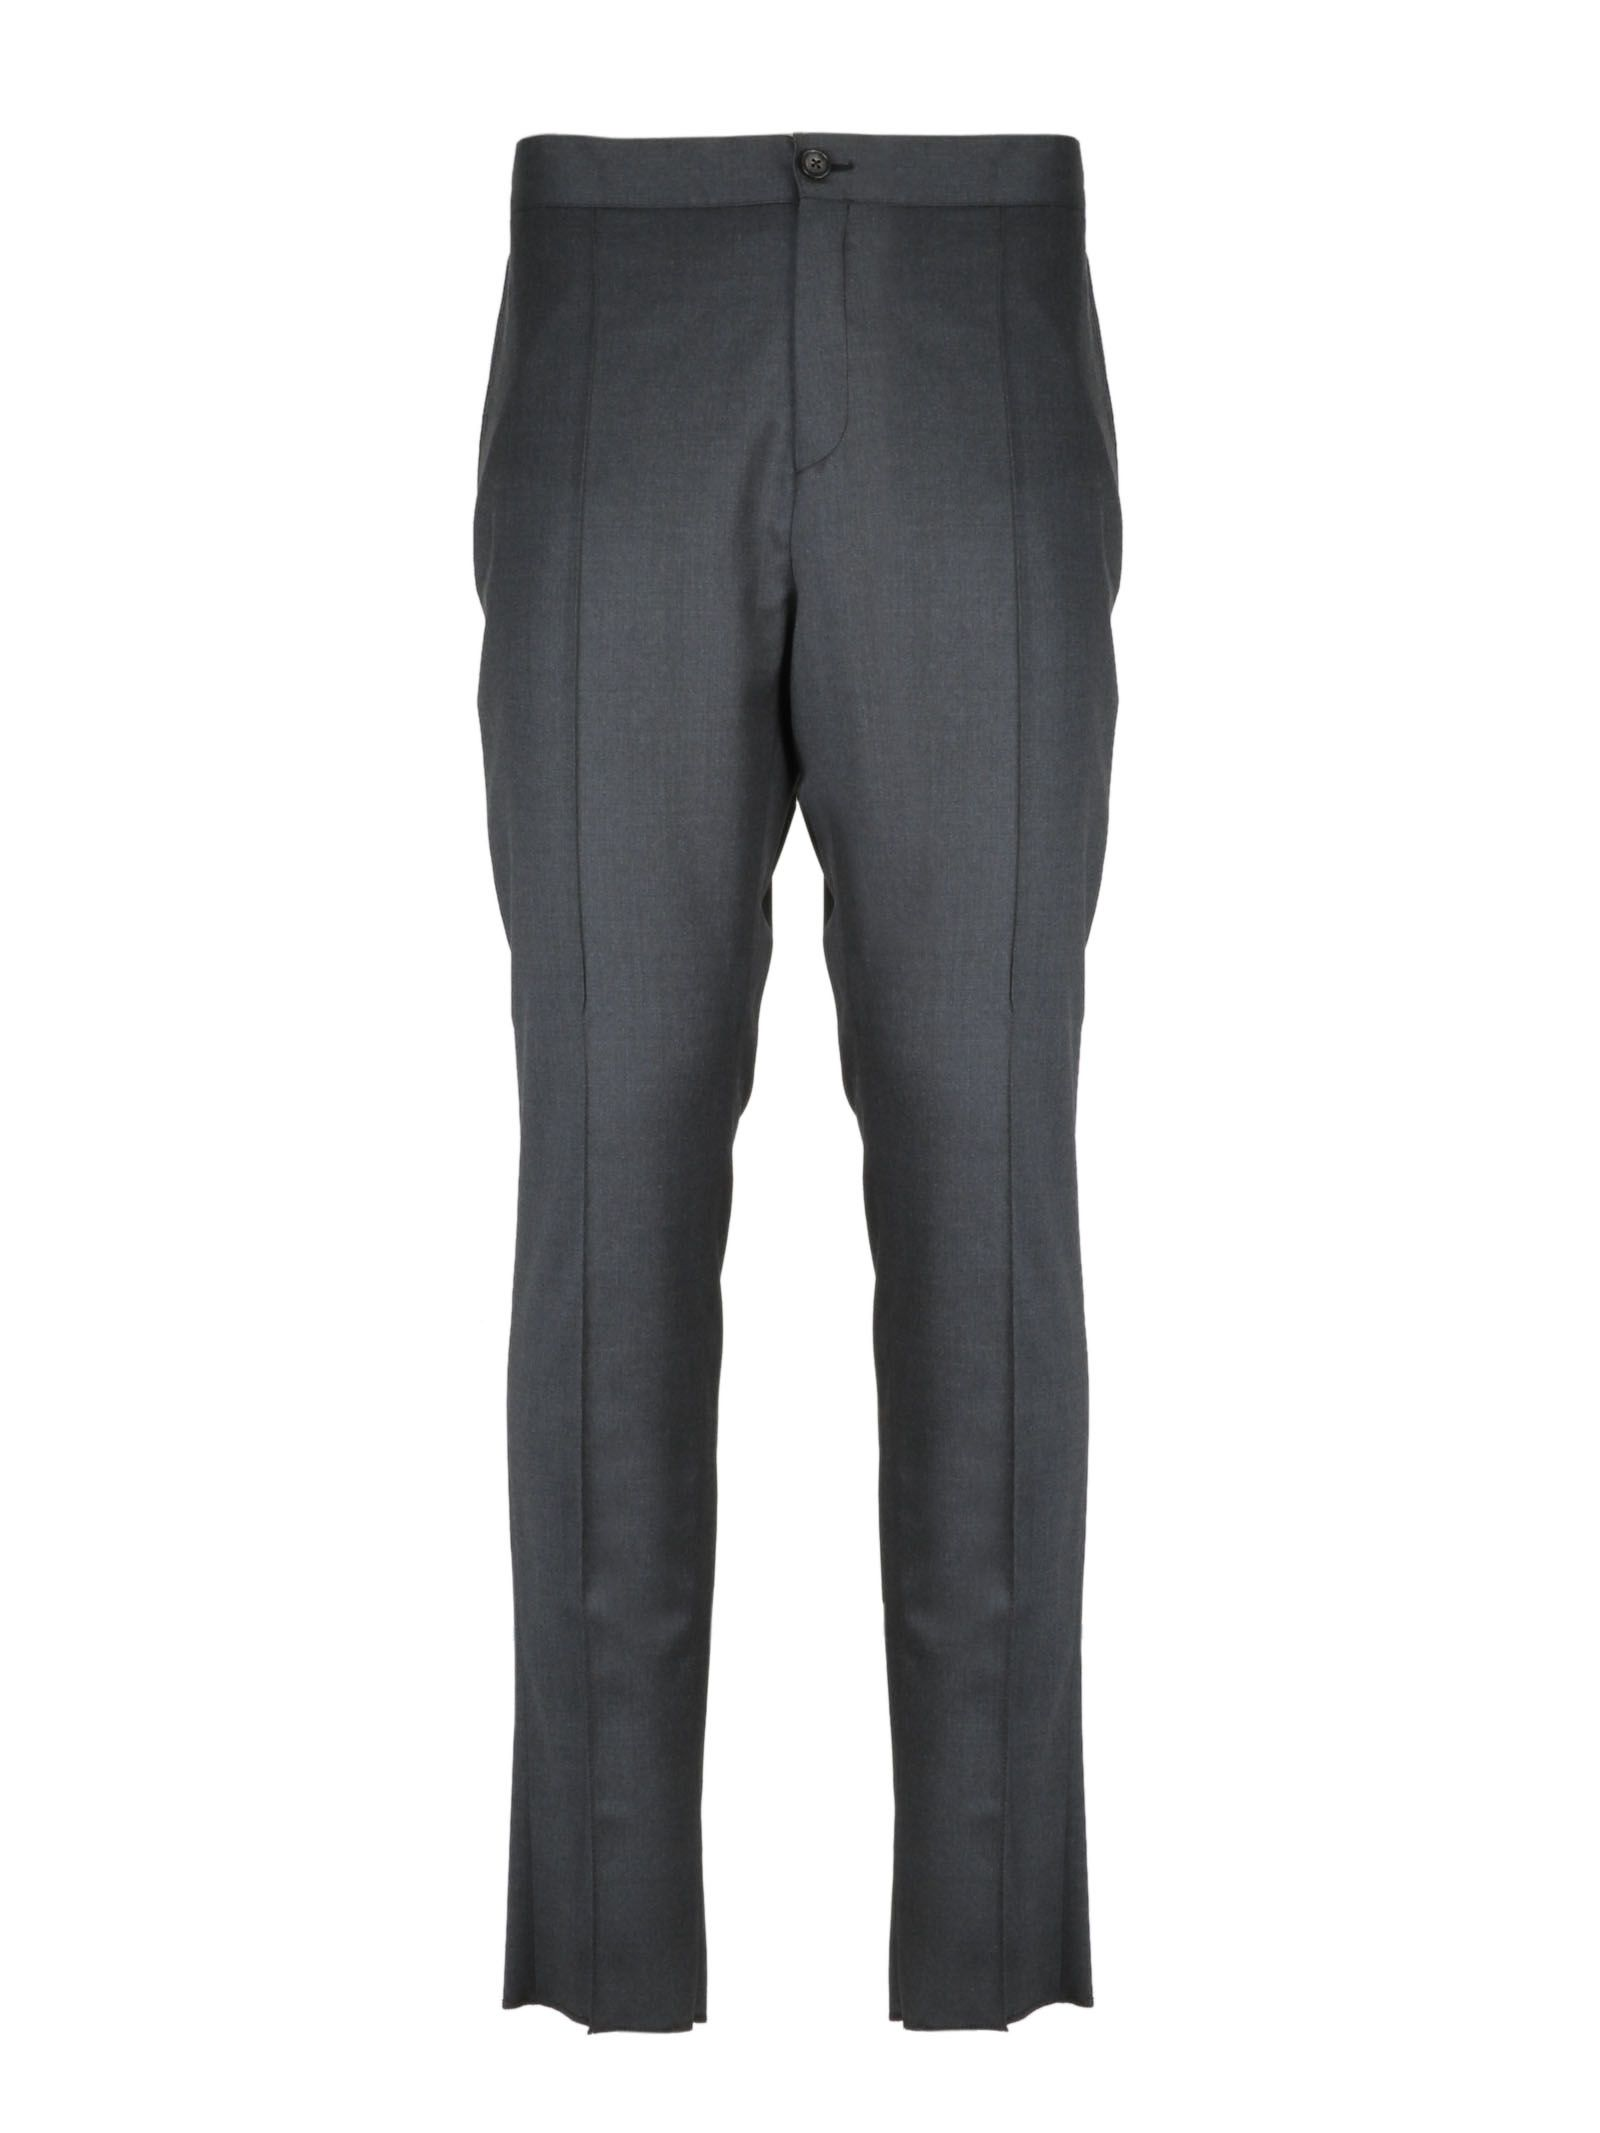 Z Zegna Tapered Trousers